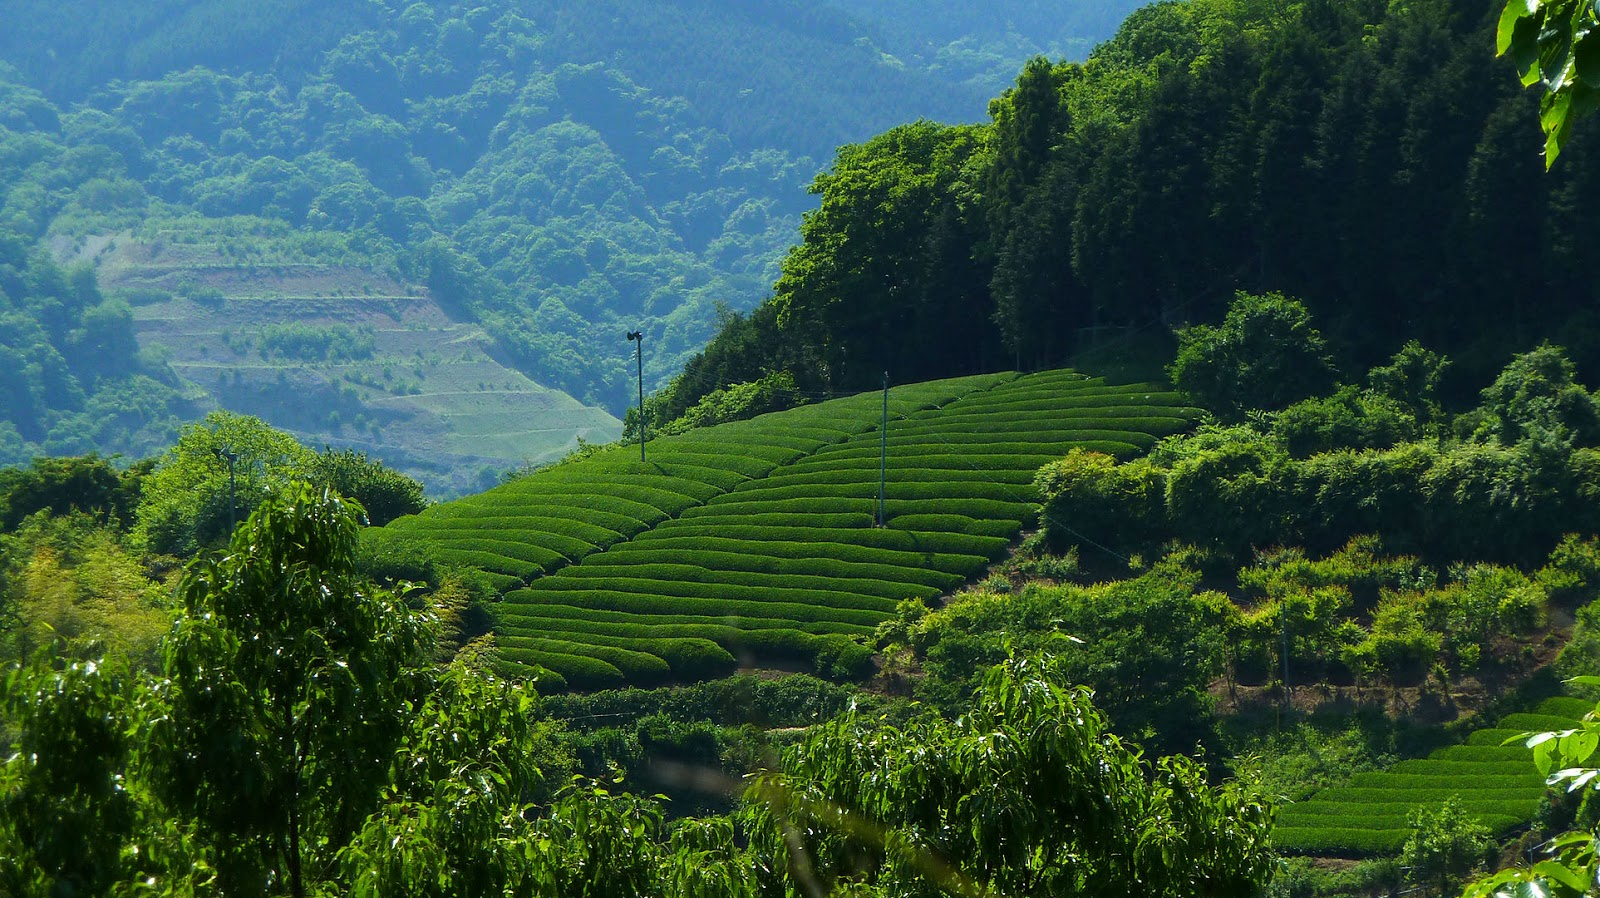 Beautiful green tea gardens hd wallpapers hd nature for Beautiful garden images hd